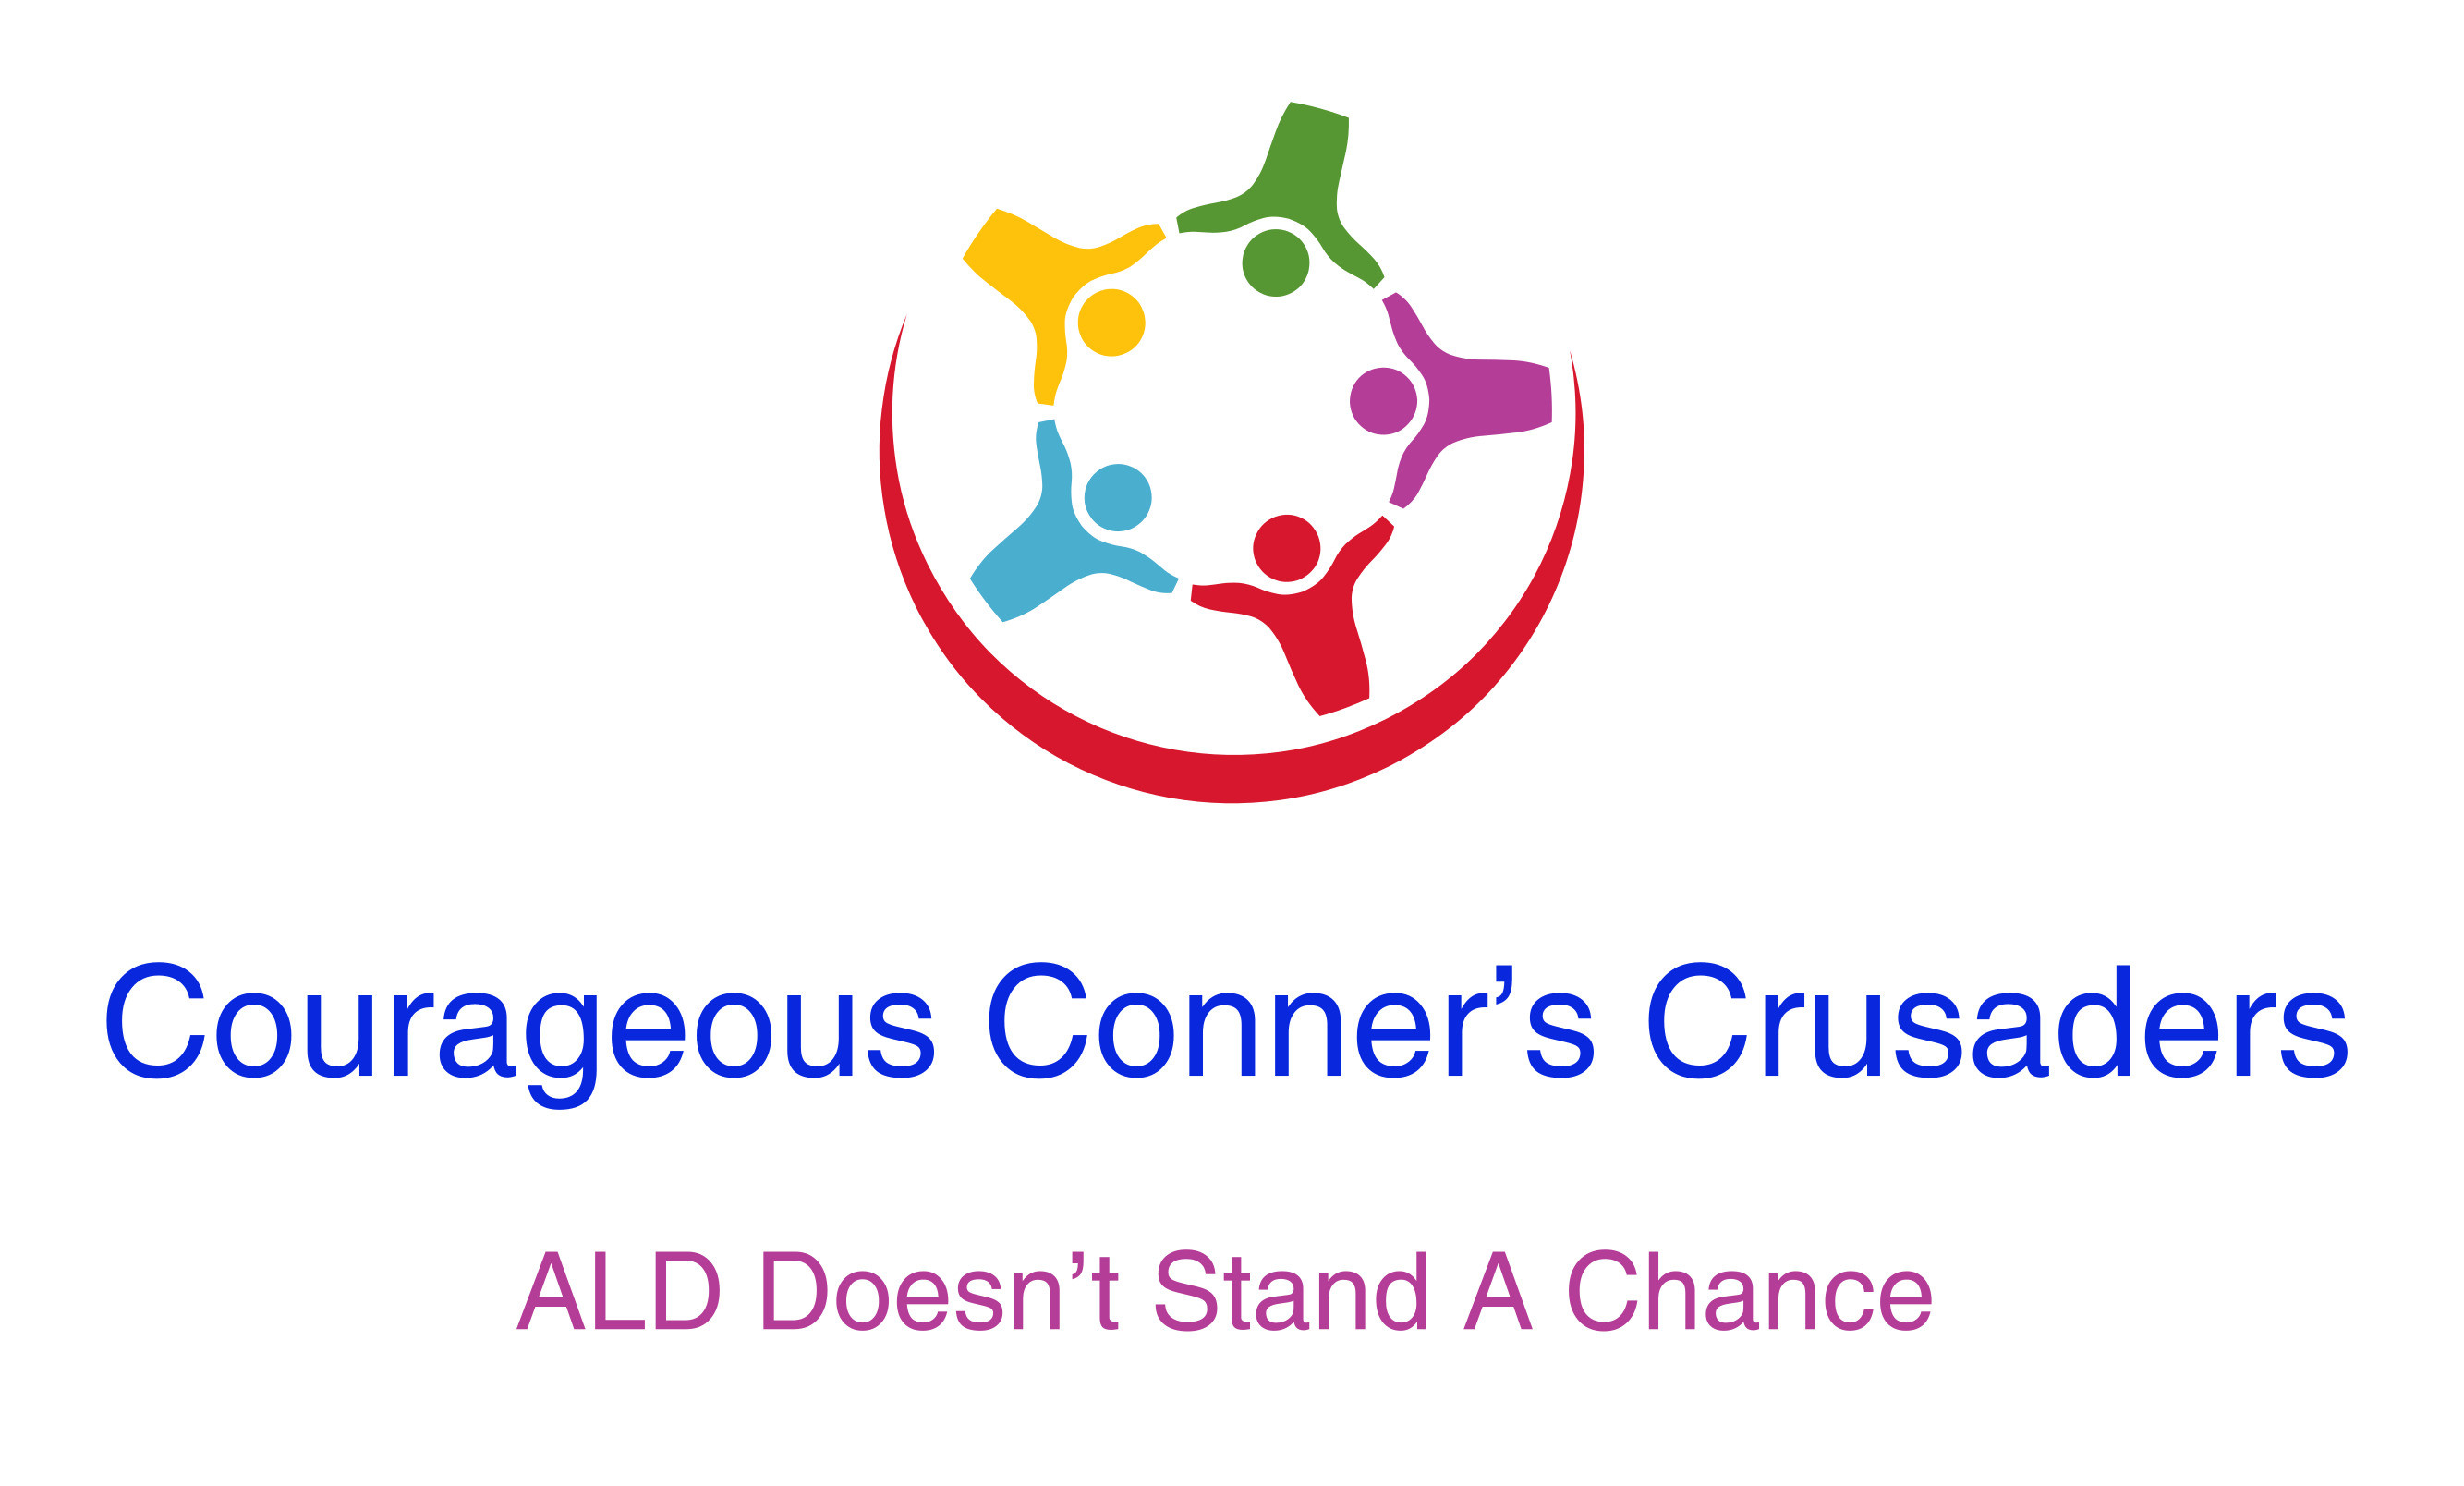 Courageous Conner's Crusaders